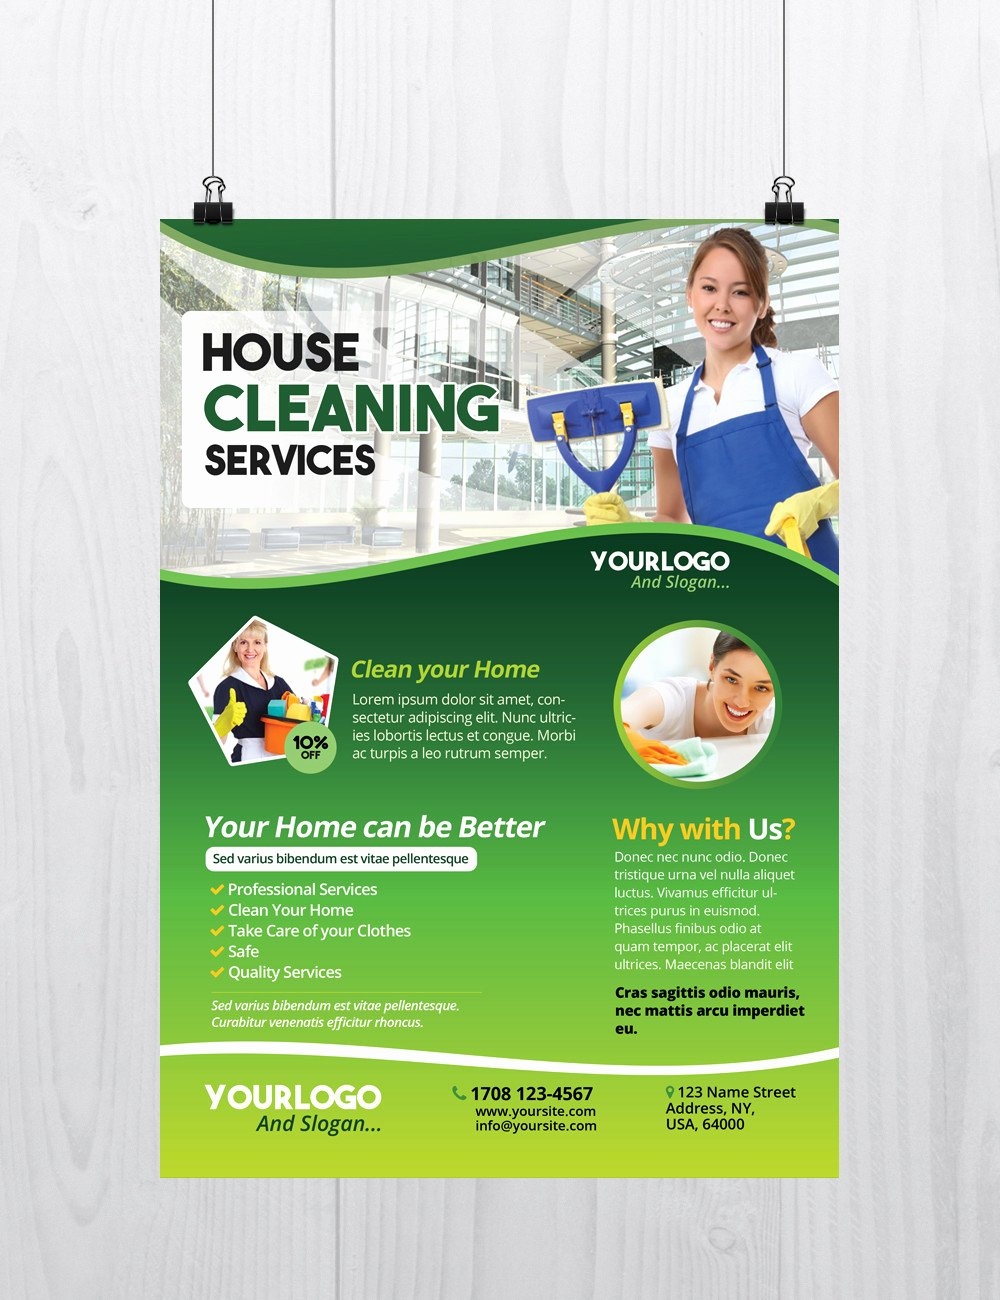 Cleaning Service Template Free Elegant Cleaning Services Download Free Psd Flyer Template